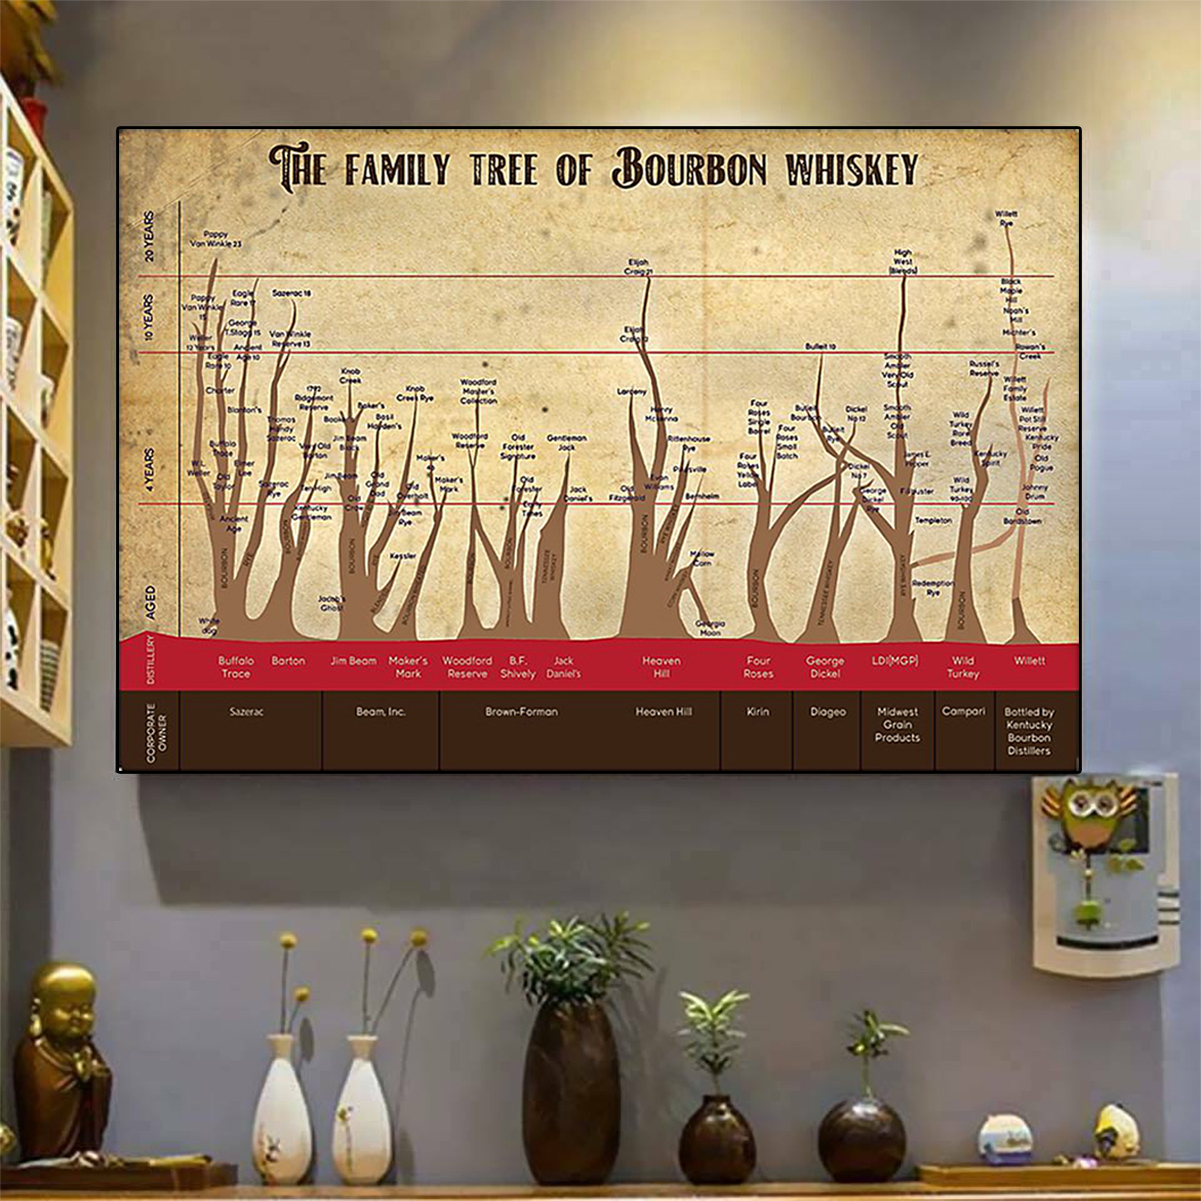 The family tree of bourbon whiskey poster A3